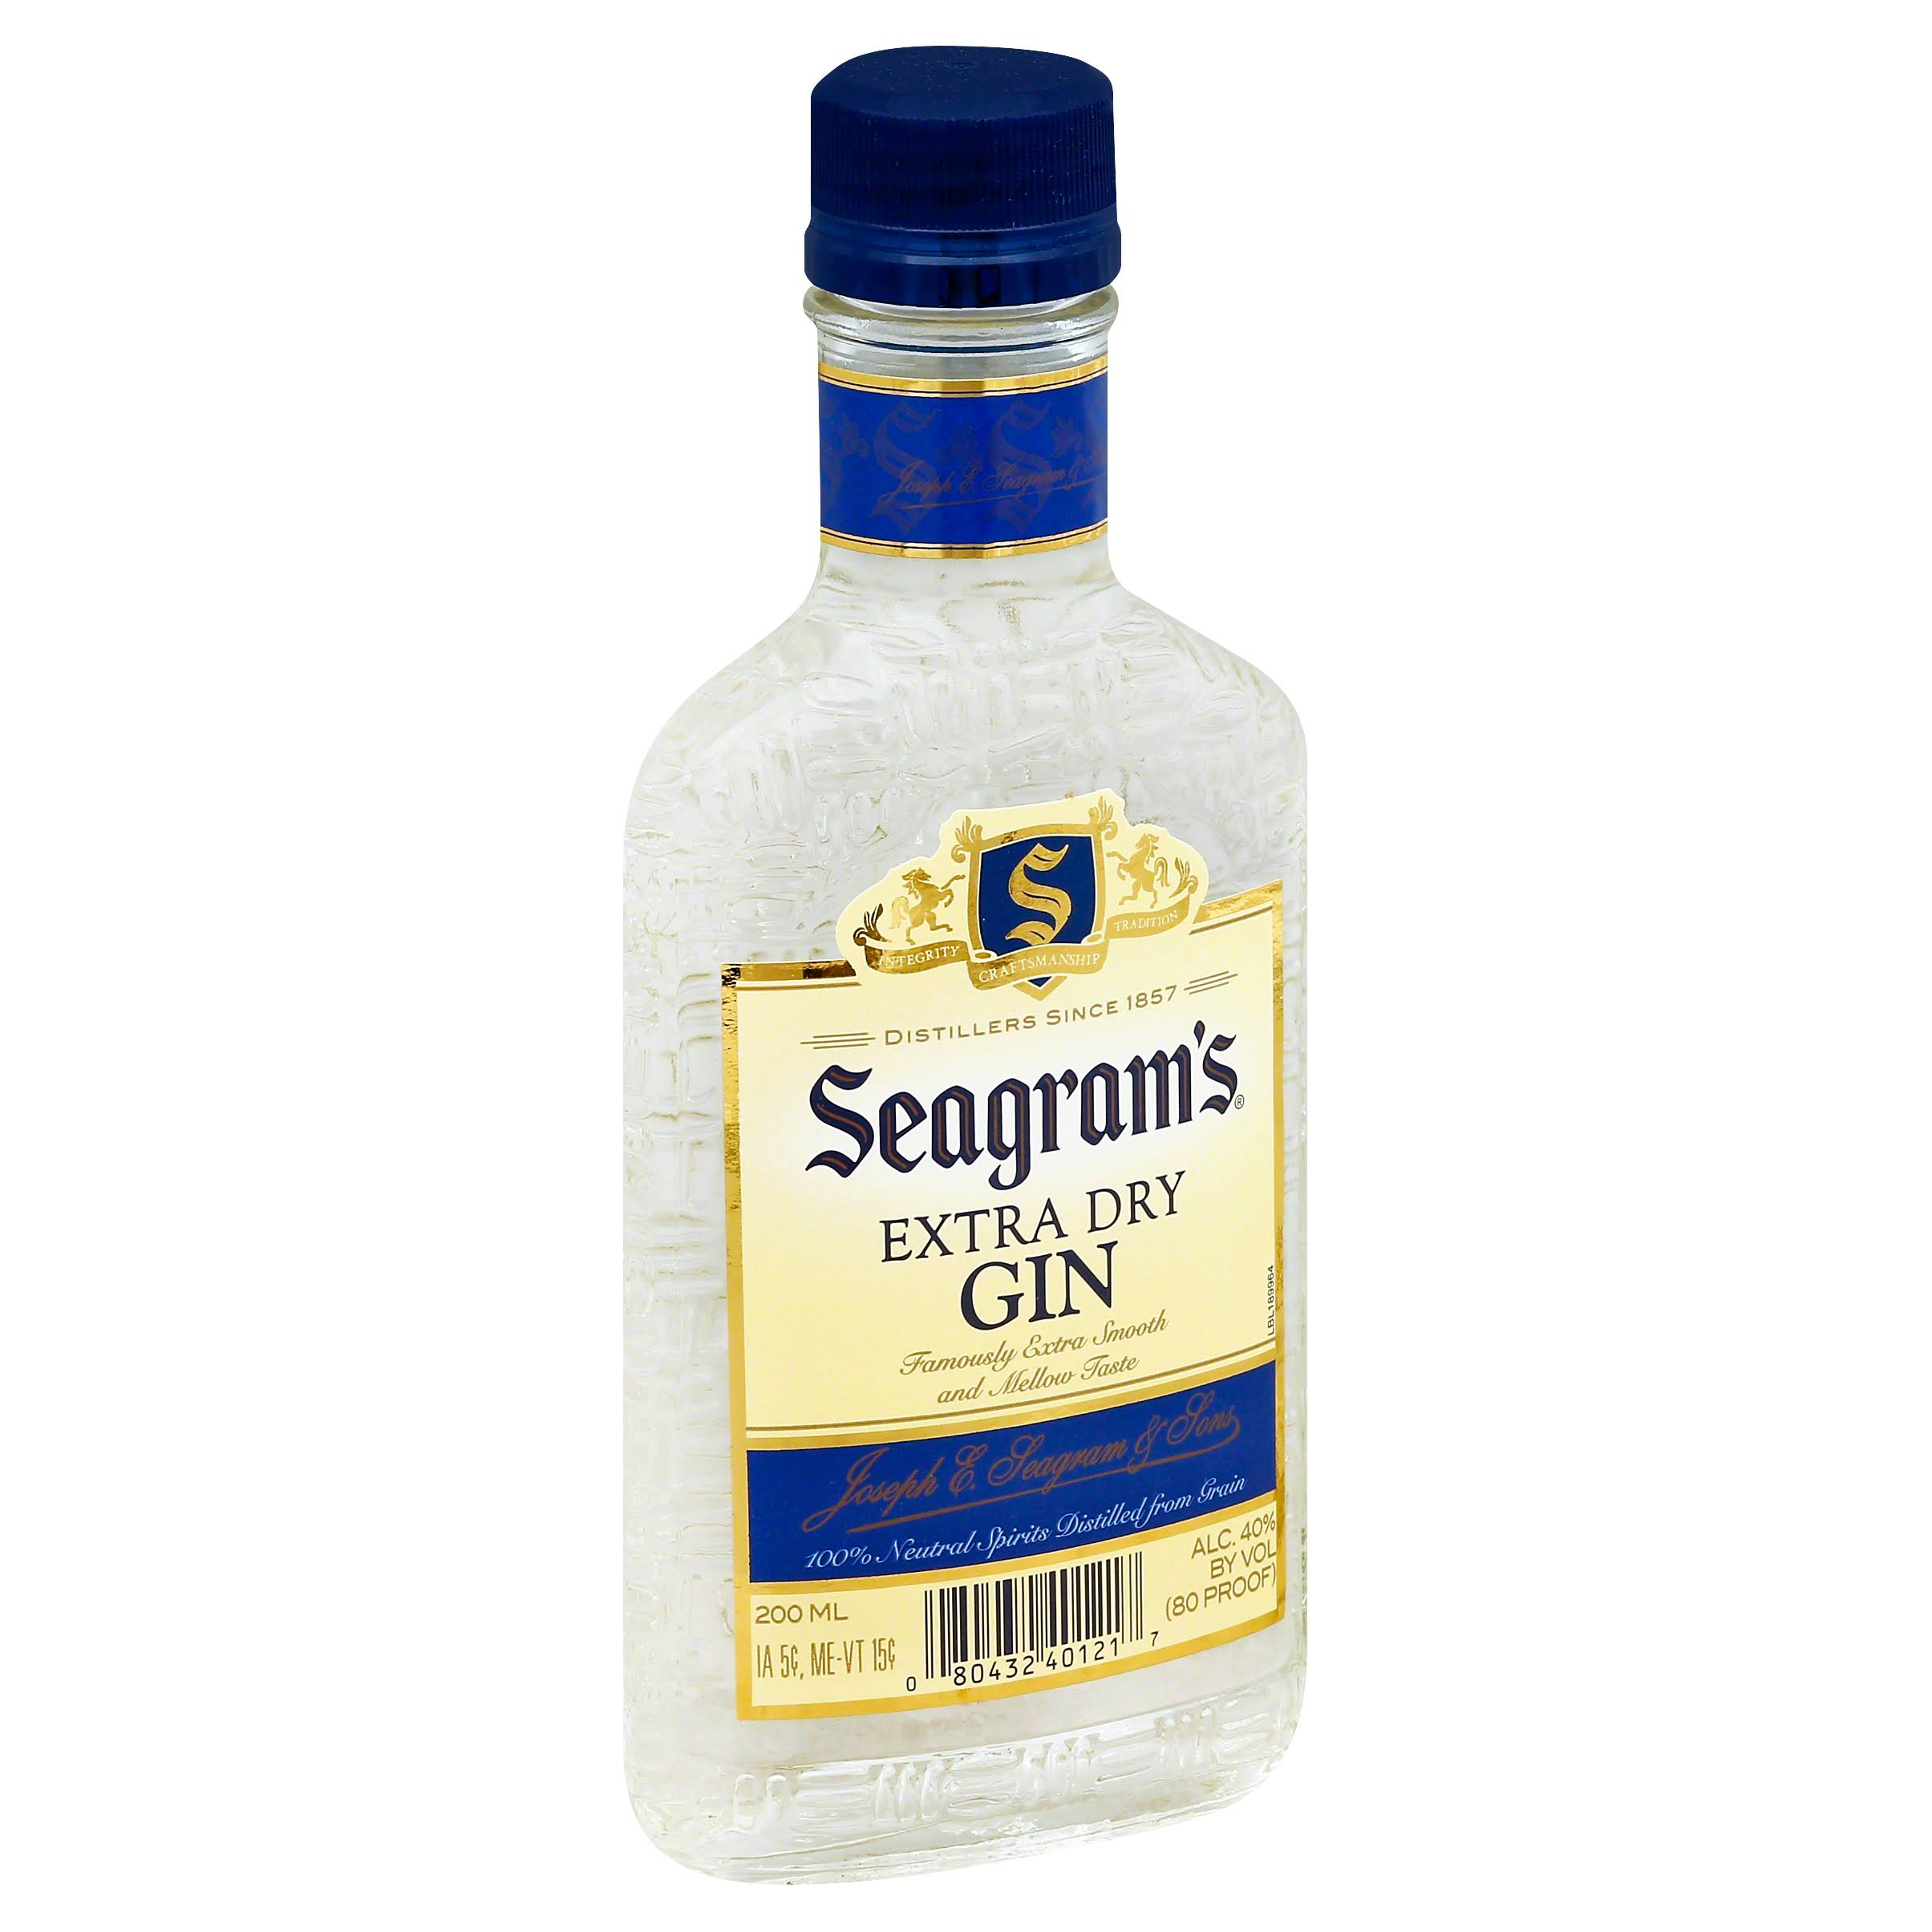 Seagrams Gin, Extra Dry - 200 ml